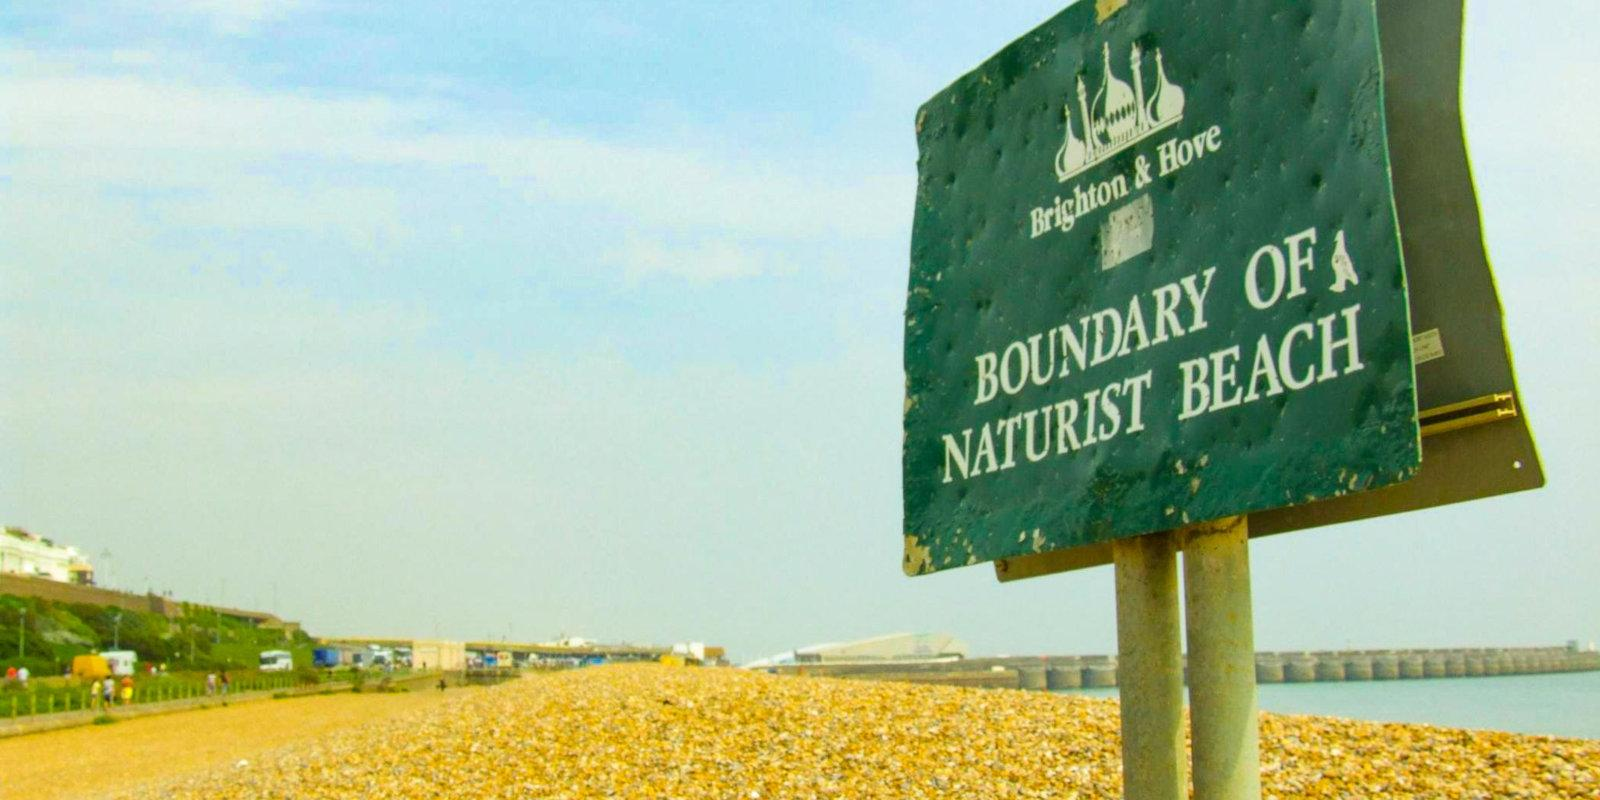 Brighton Naturist Beach is one of England's best gay nude beaches, even if it is covered in pebbles